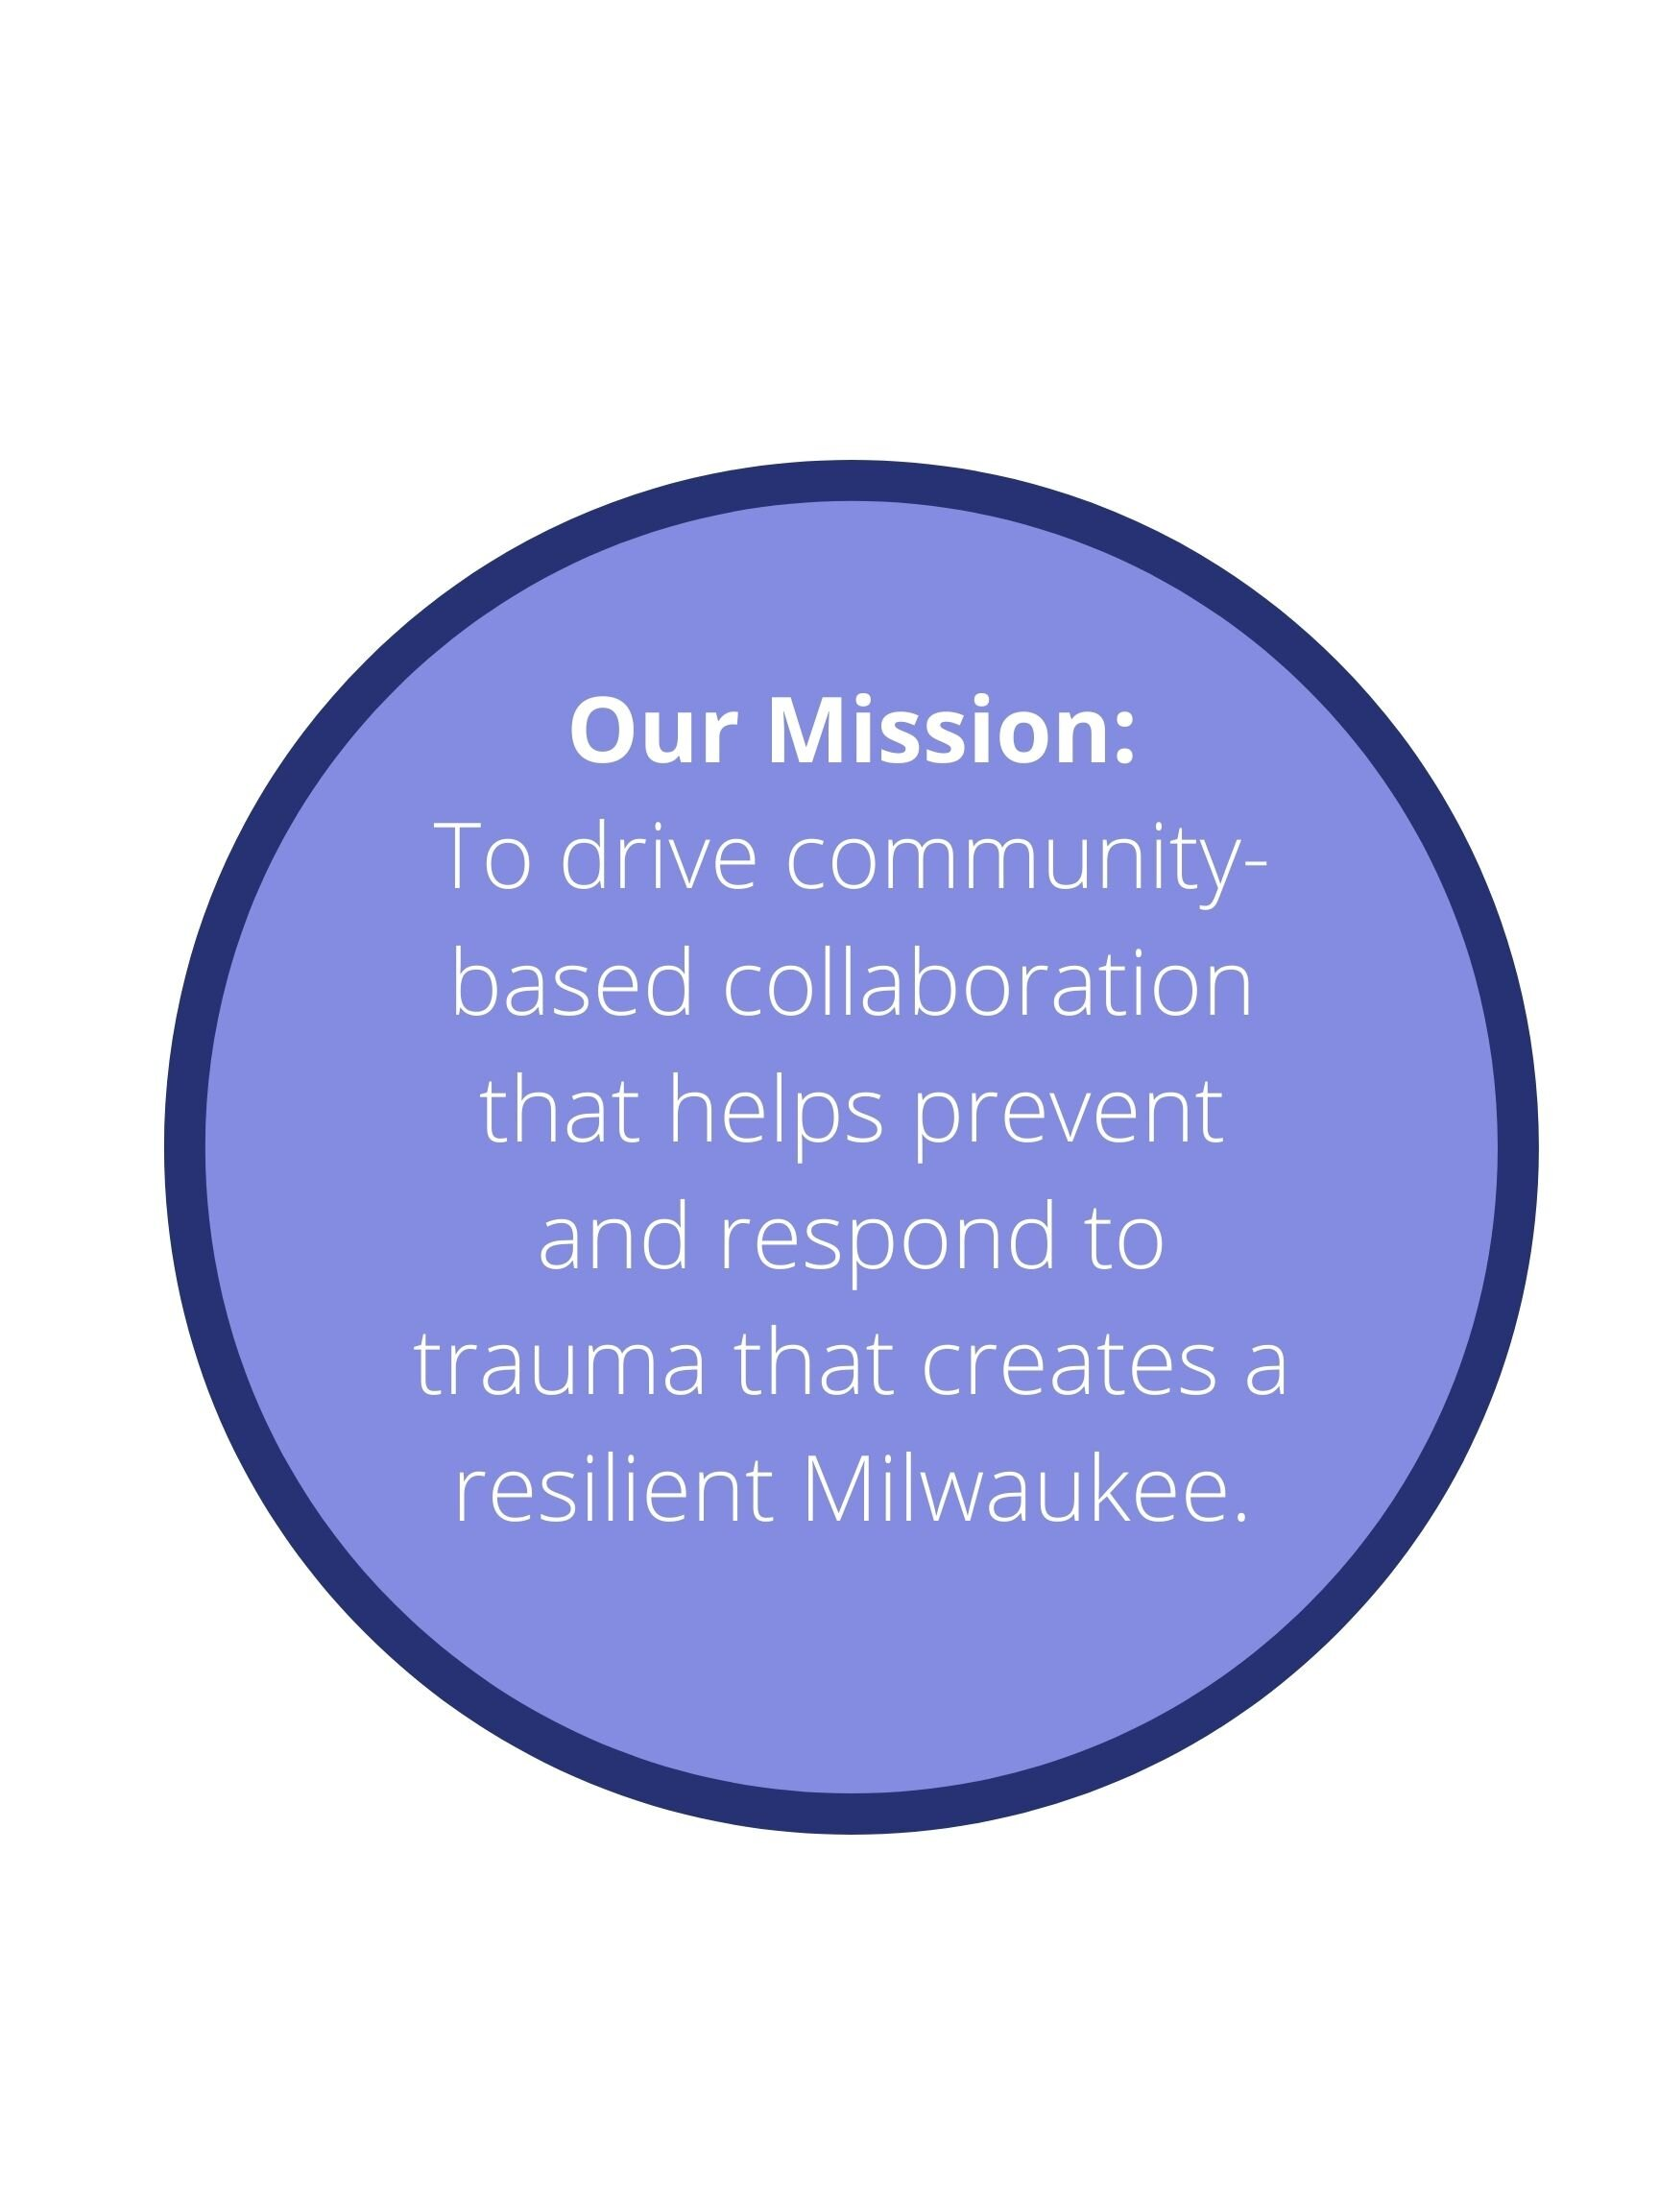 Our Mission_ To drive community-based collaboration that helps prevent and respond to trauma and creates a resilient Milwaukee (9).jpg